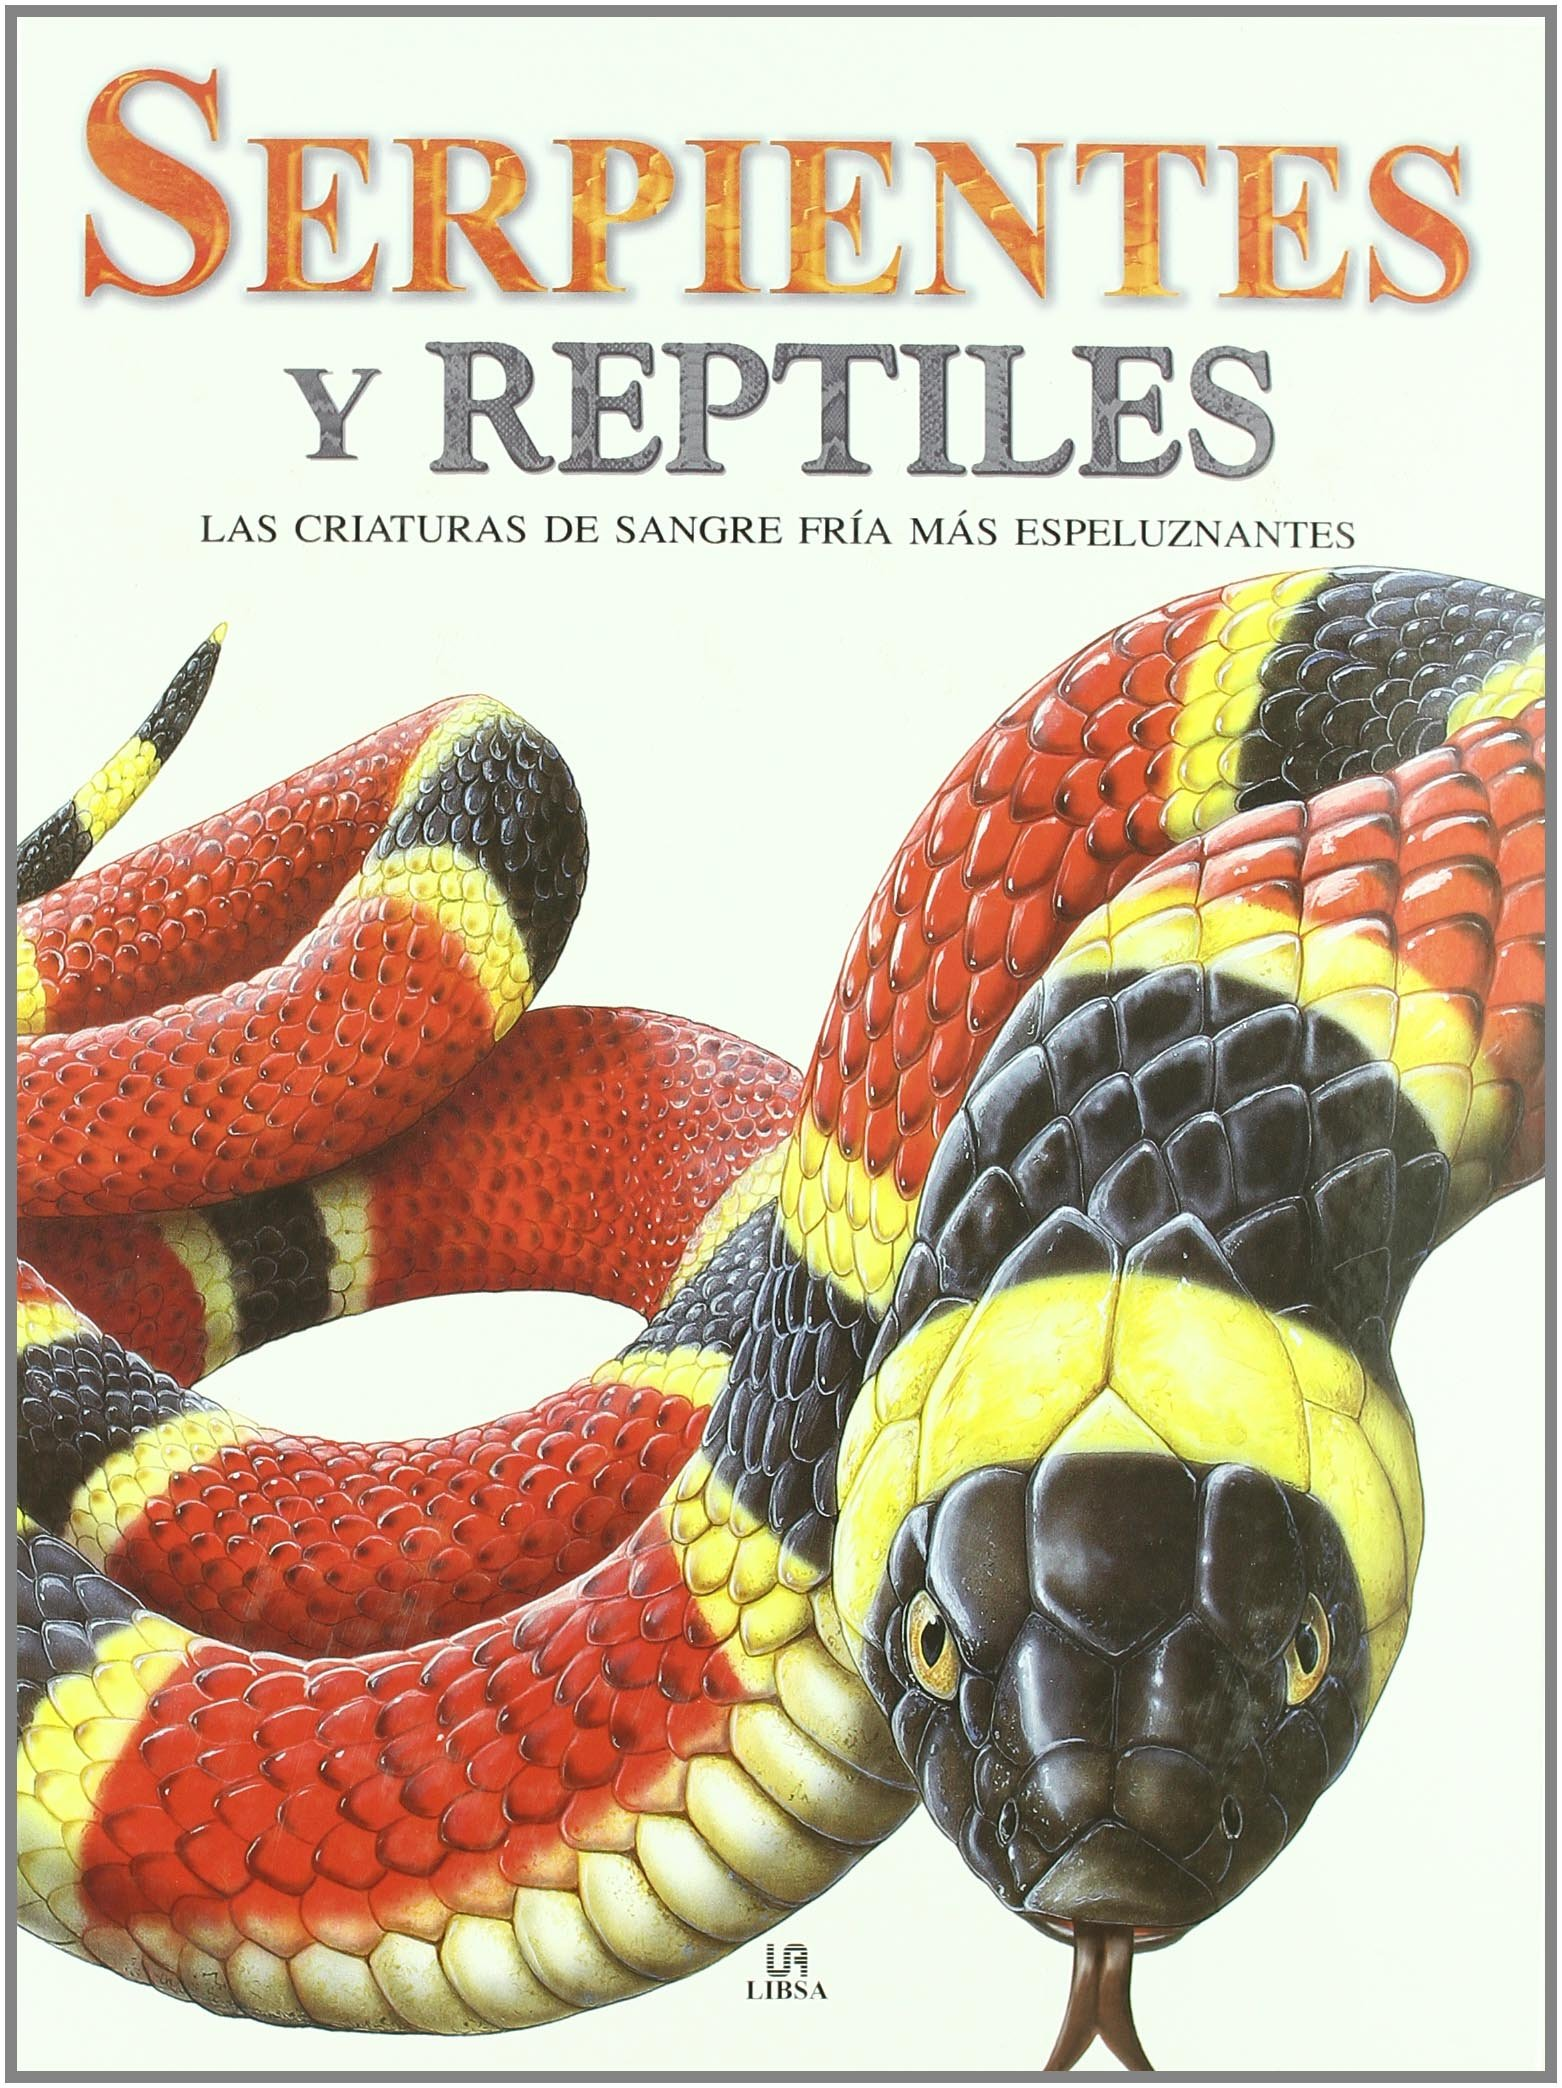 Read Online Serpientes y reptiles / Snakes and Reptiles: Las criaturas de sangre fria mas espeluznantes / The Scariest Cold-Blooded Creatures on Earth (Spanish Edition) pdf